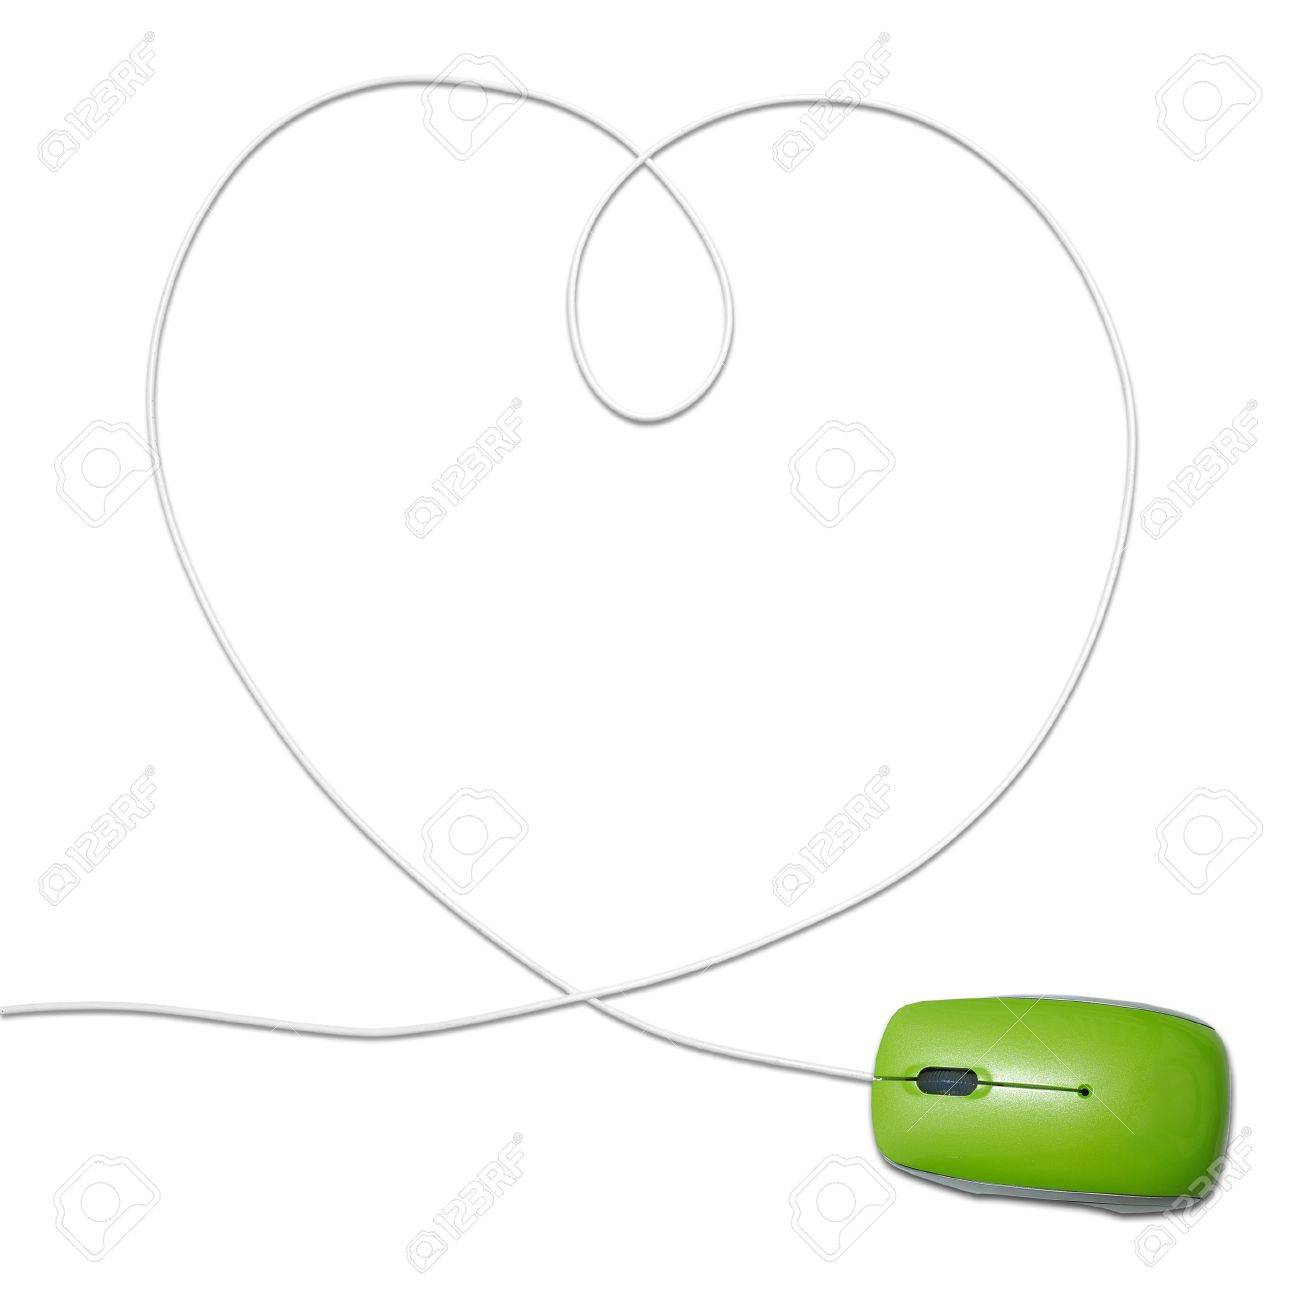 hight resolution of computer mouse with heart shaped wire stock photo 10745532